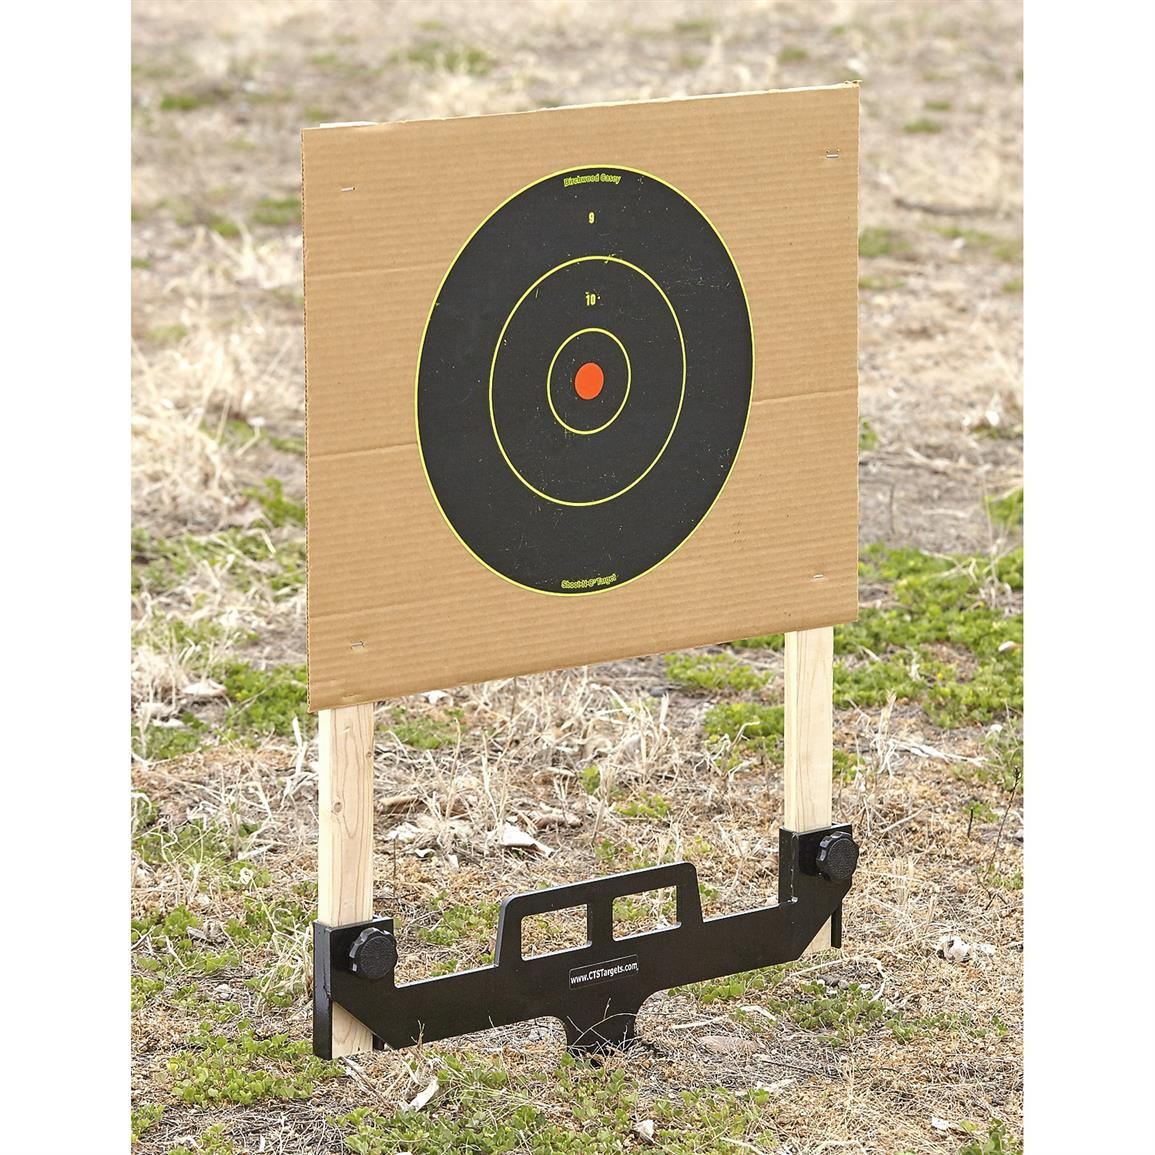 Simple setup for your targets